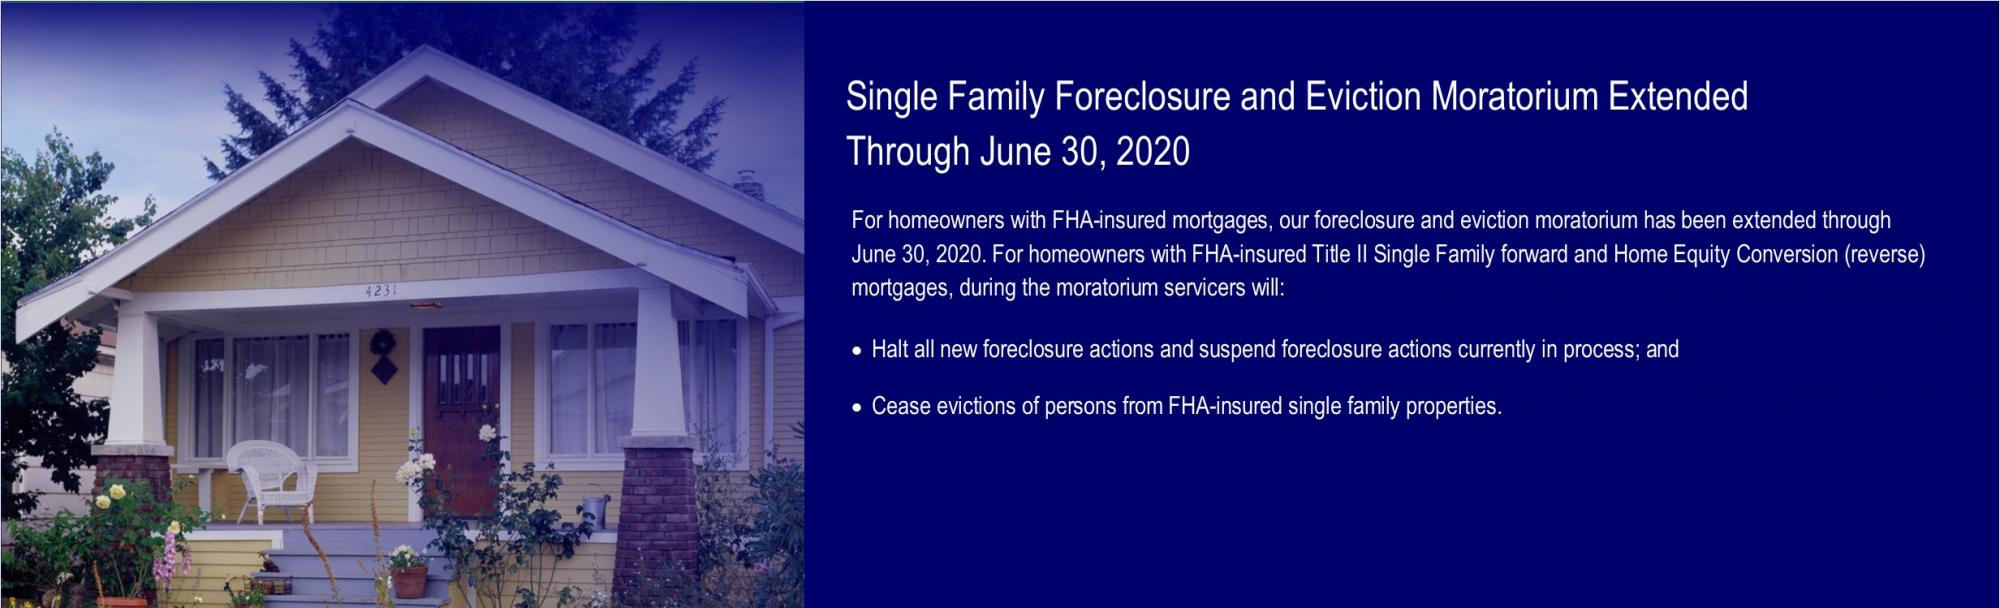 [Single Family Foreclosure and Eviction Moratorium Extended Through June 30, 2020]. HUD Photo